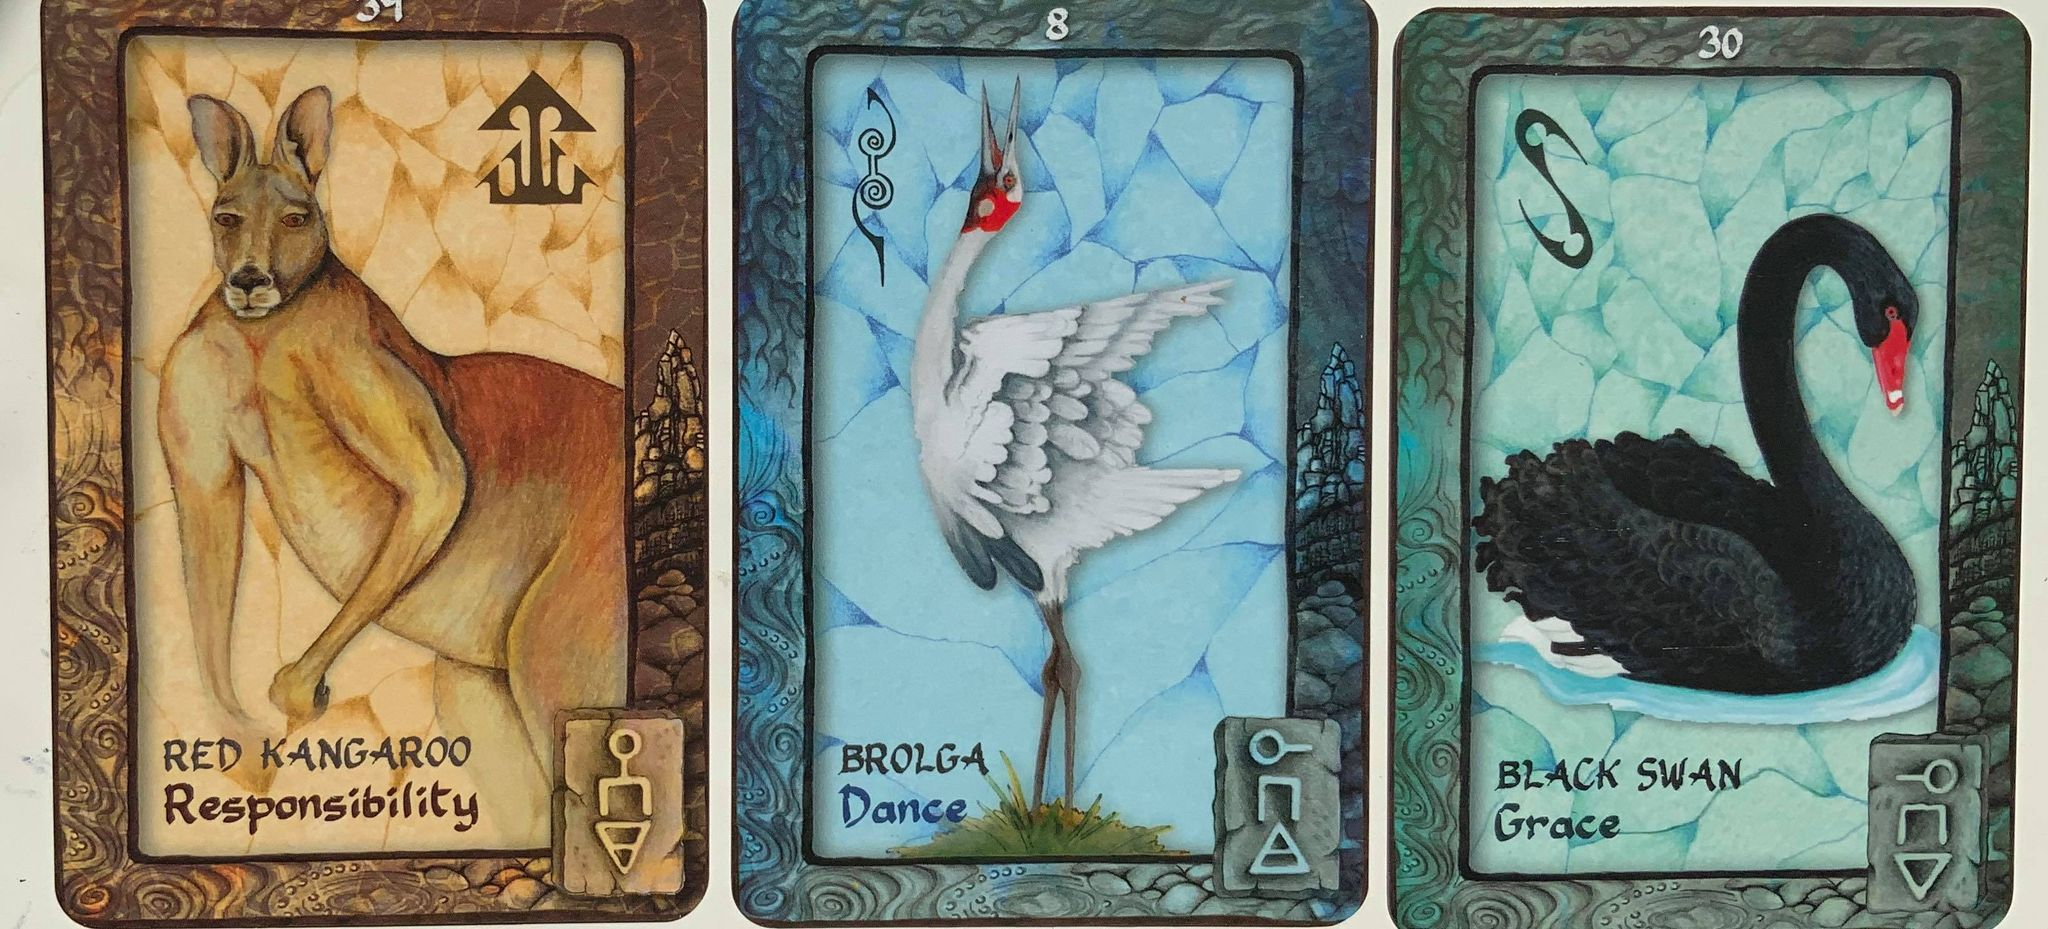 Your Weekly Purpose Reading using Animal Dreaming Cards – Responsibility, Dance, Grace